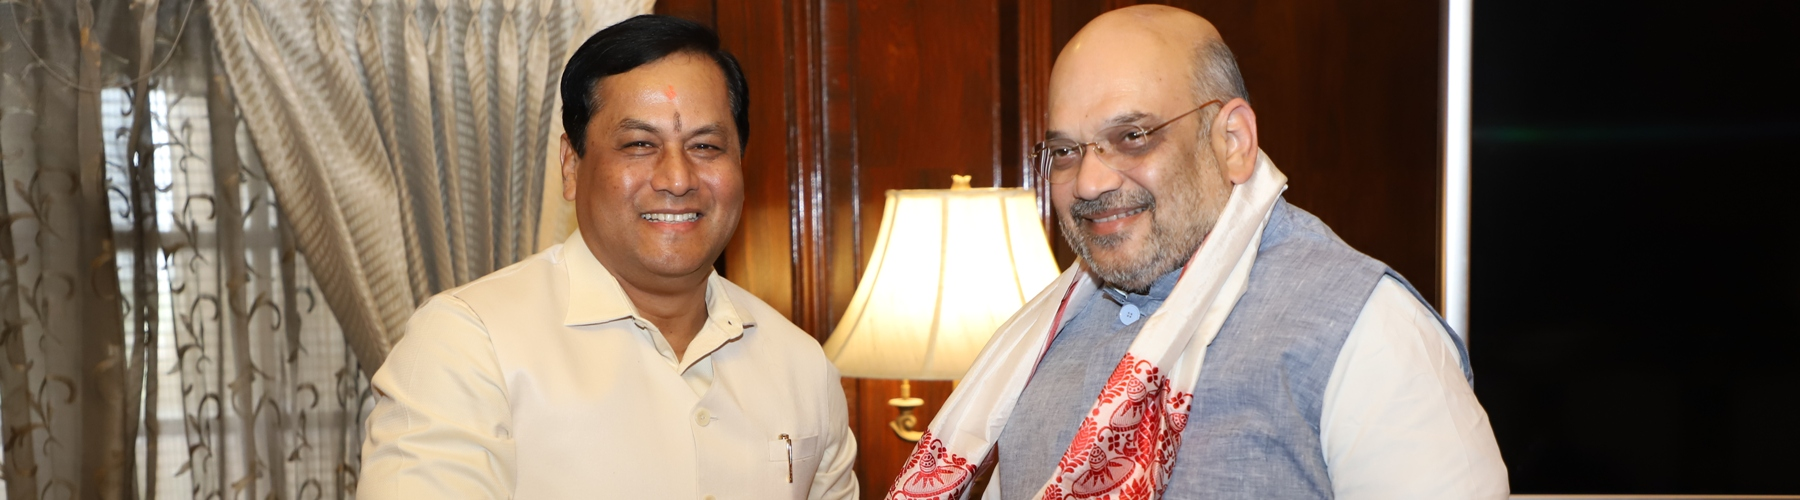 The Chief Minister of Assam, Shri Sarbananda Sonowal, calling upon Union Home Minister Shri Amit Shah in New Delhi on June 14, 2019.